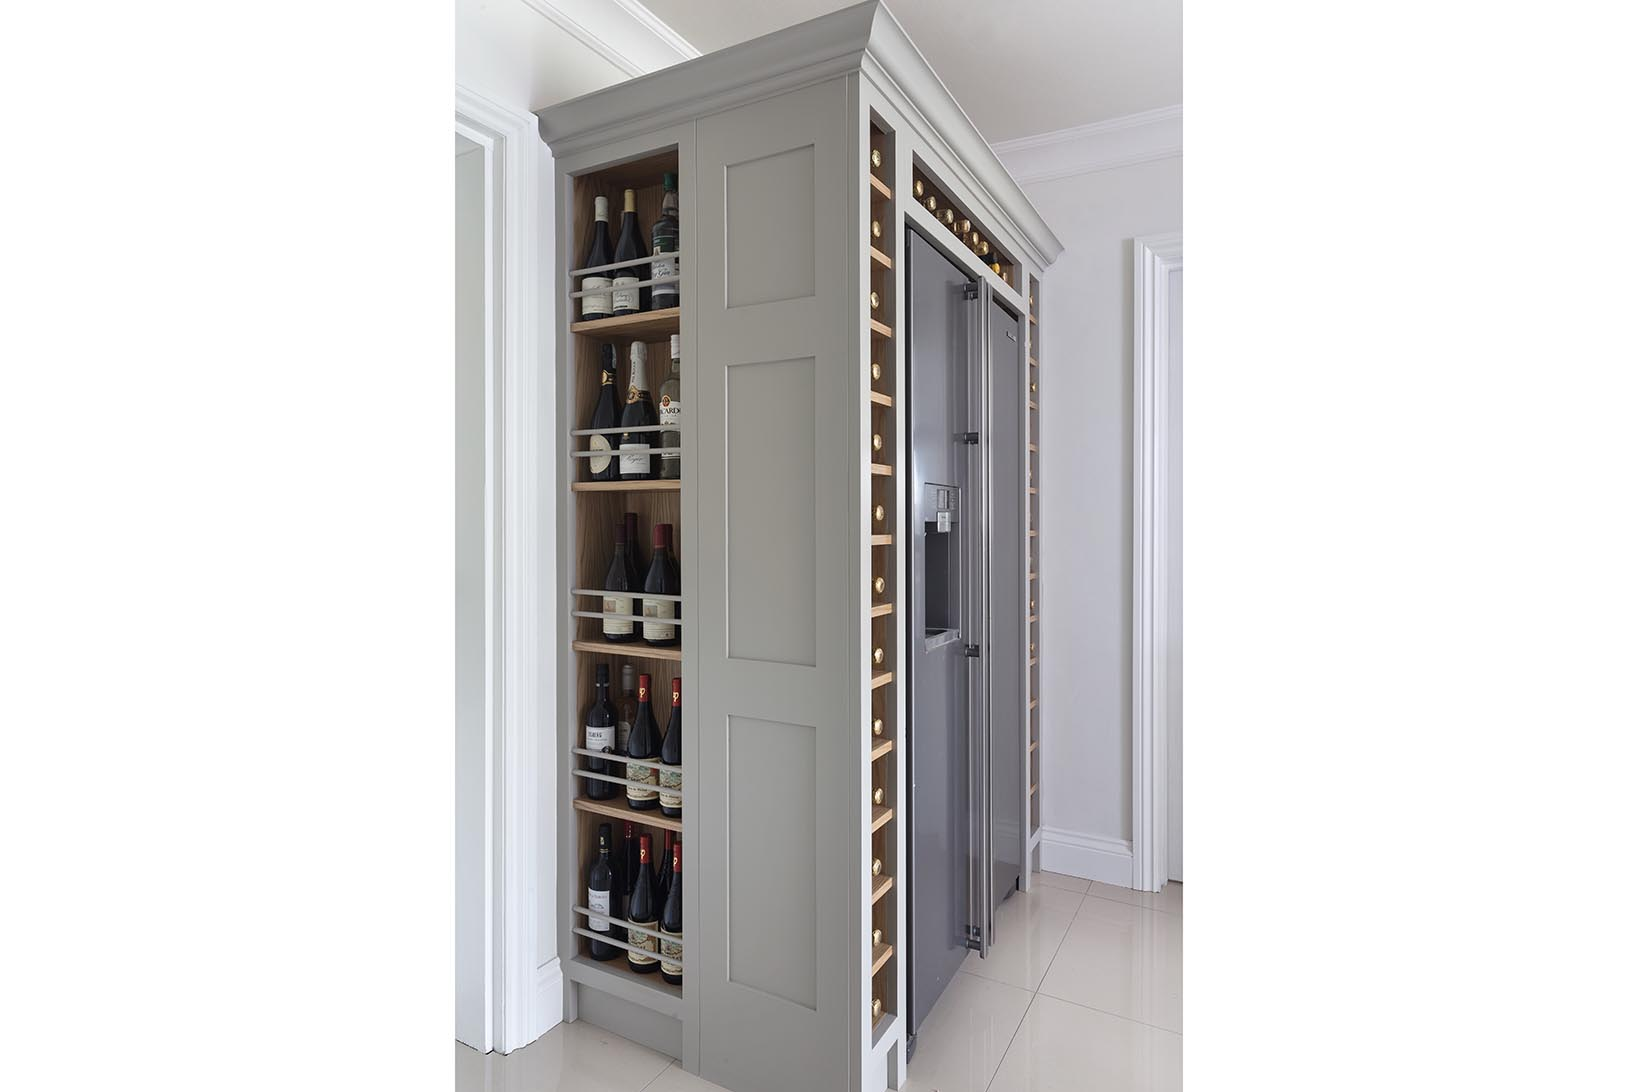 Samsung american style fridge freezer with wine storage built around it hand painted in Farrow & Ball Hardwick White.